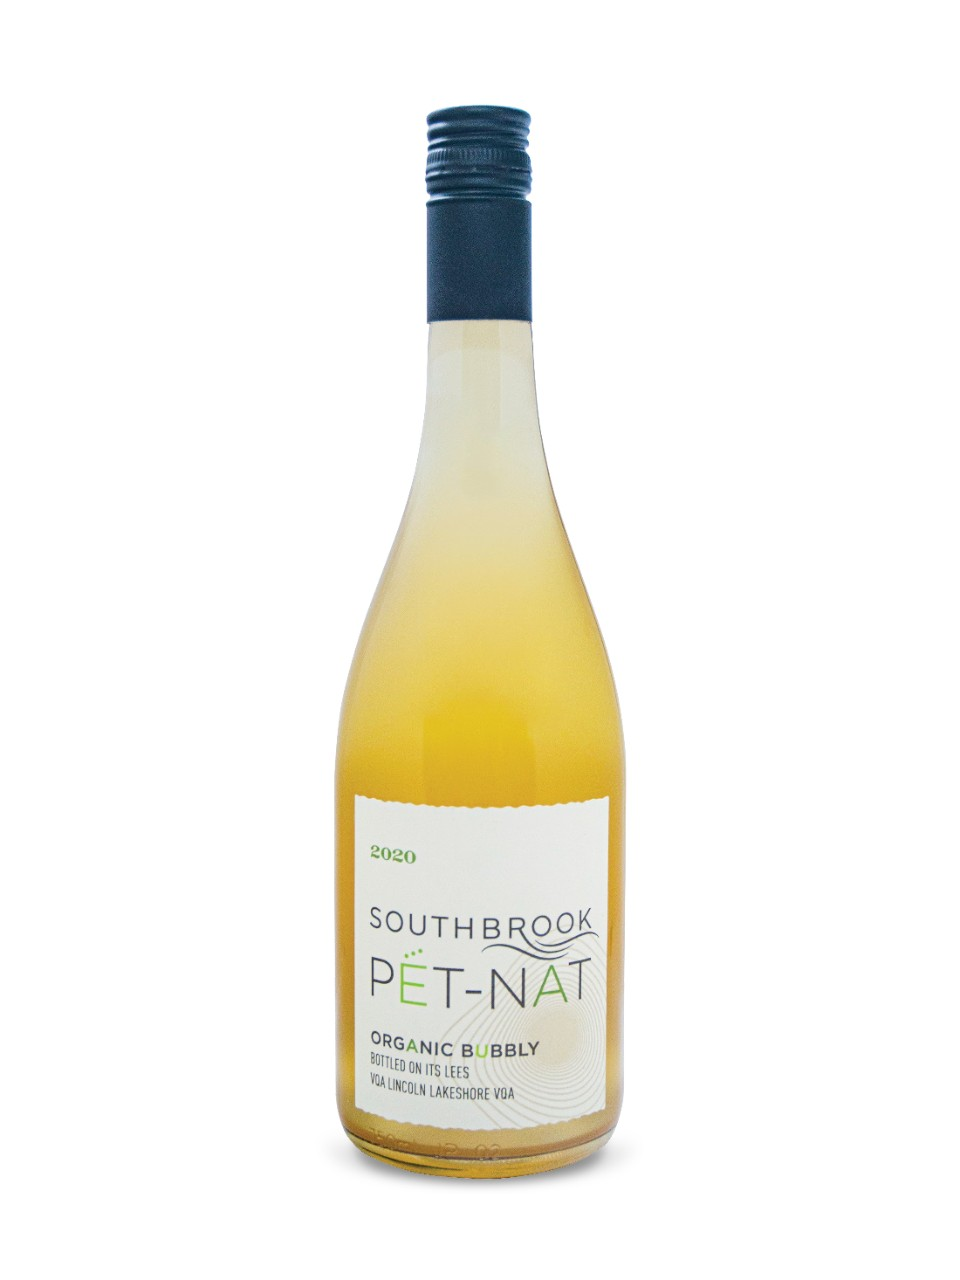 Southbrook Saunder's Vineyard Organic Pet Nat Bubbly Cuvee from LCBO